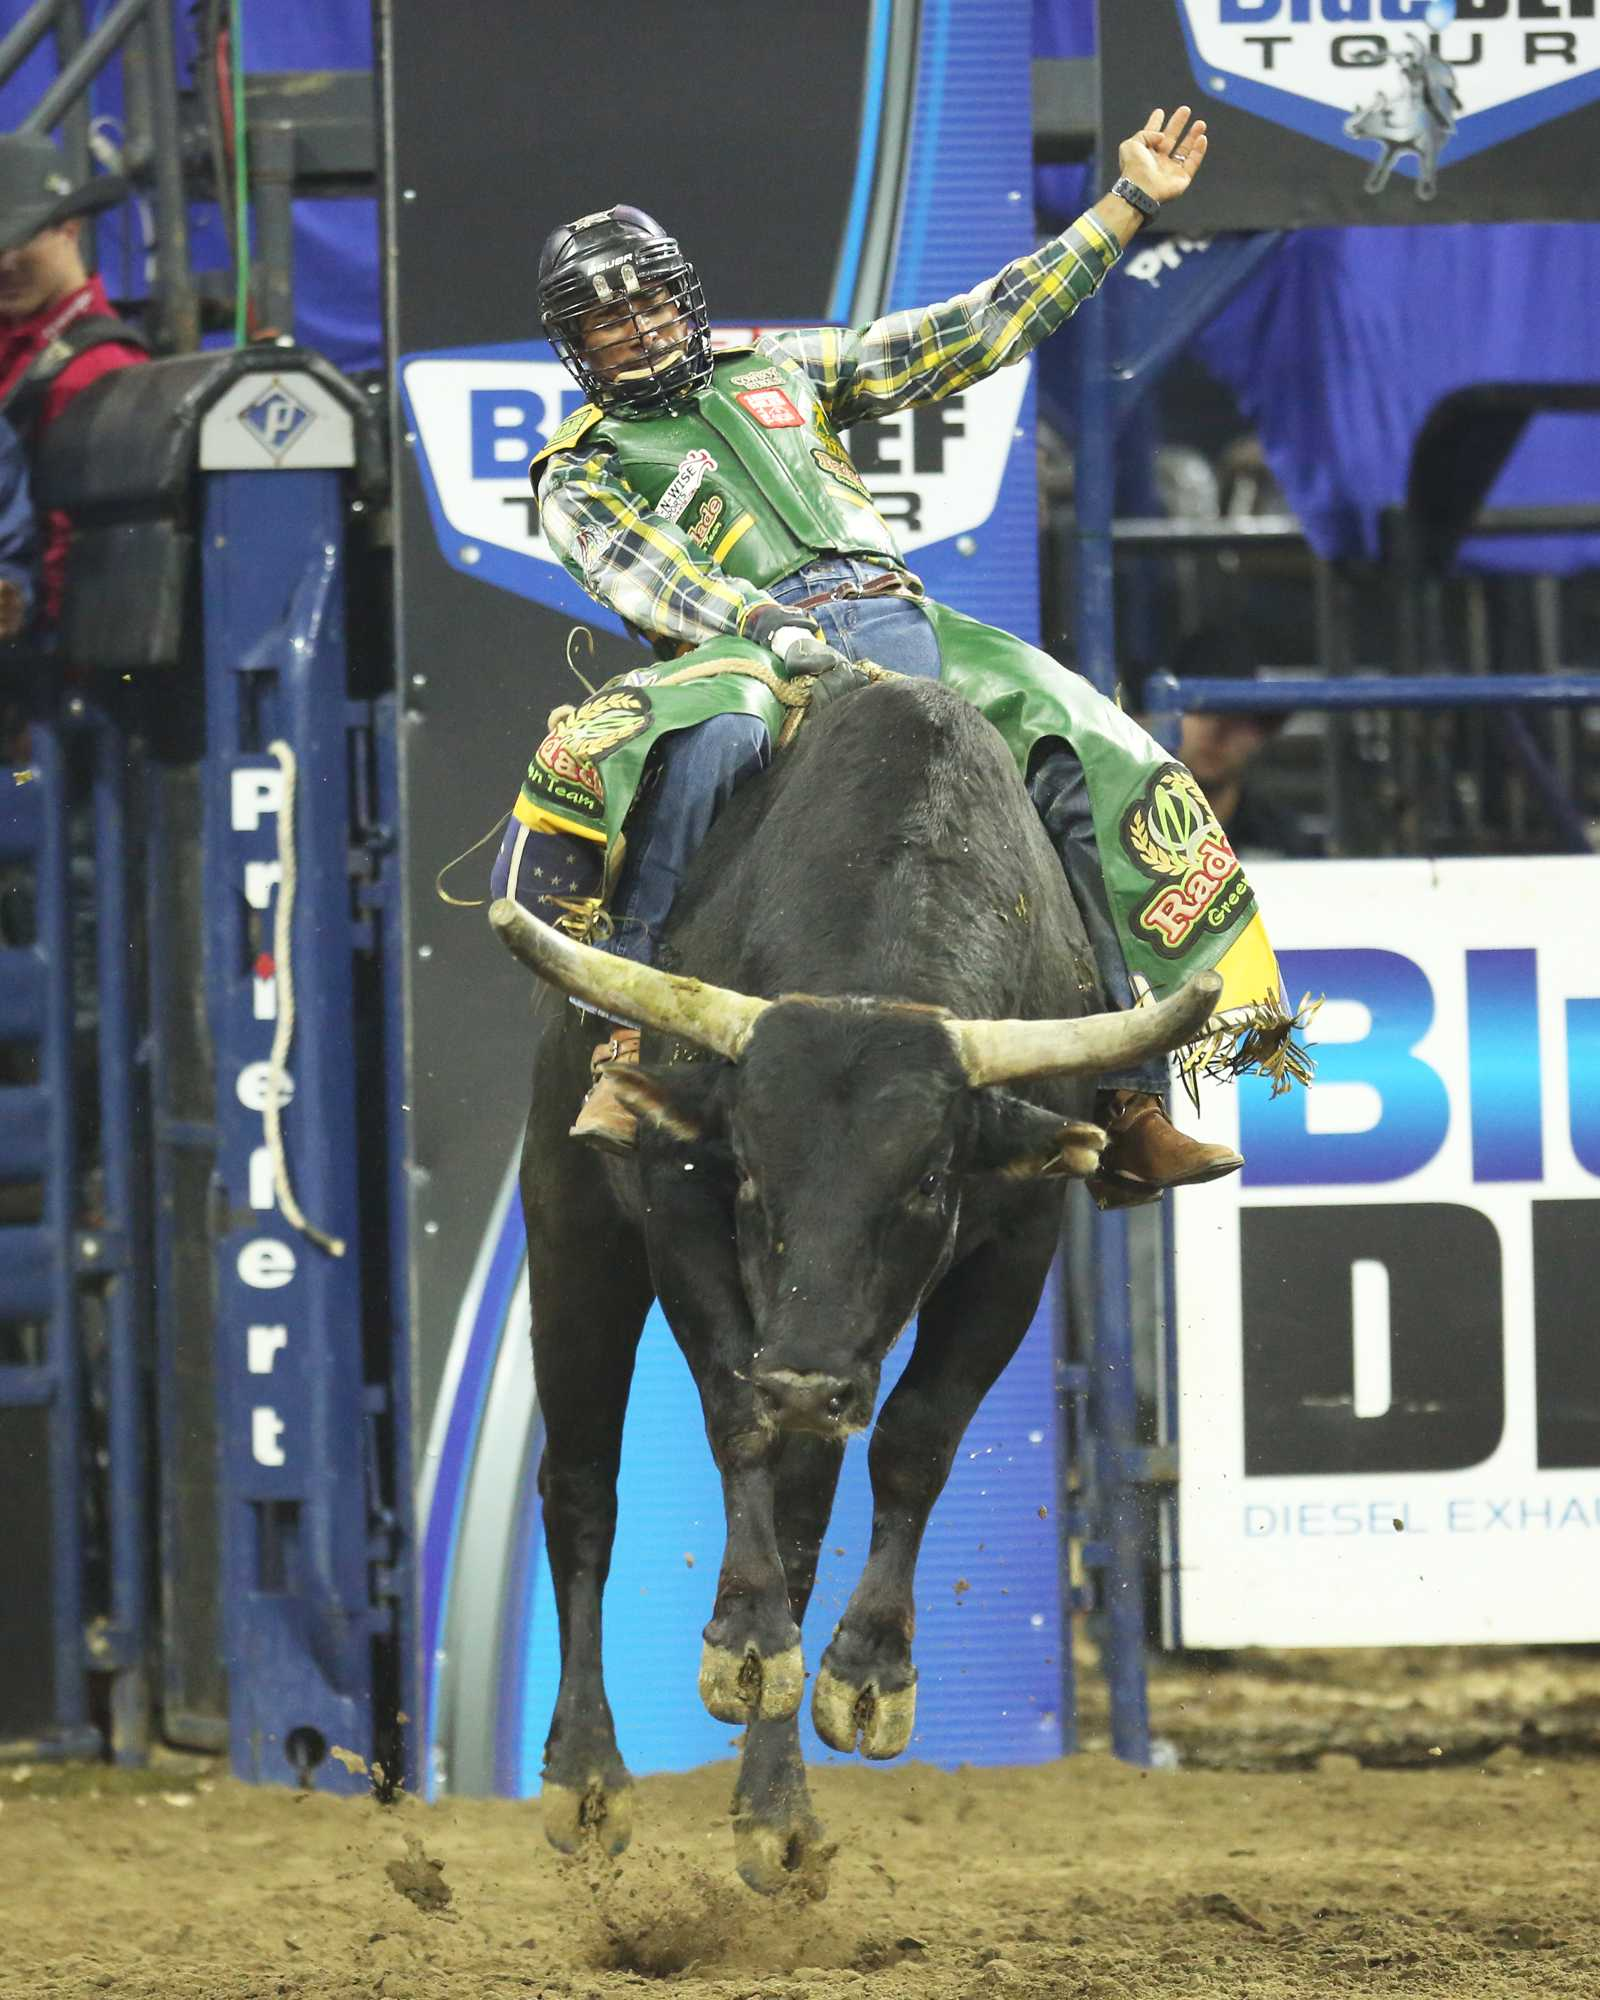 Douglas Lino de Souza tries to stay atop Choctaw during the event at Rabobank Arena on Saturday, Nov. 21.